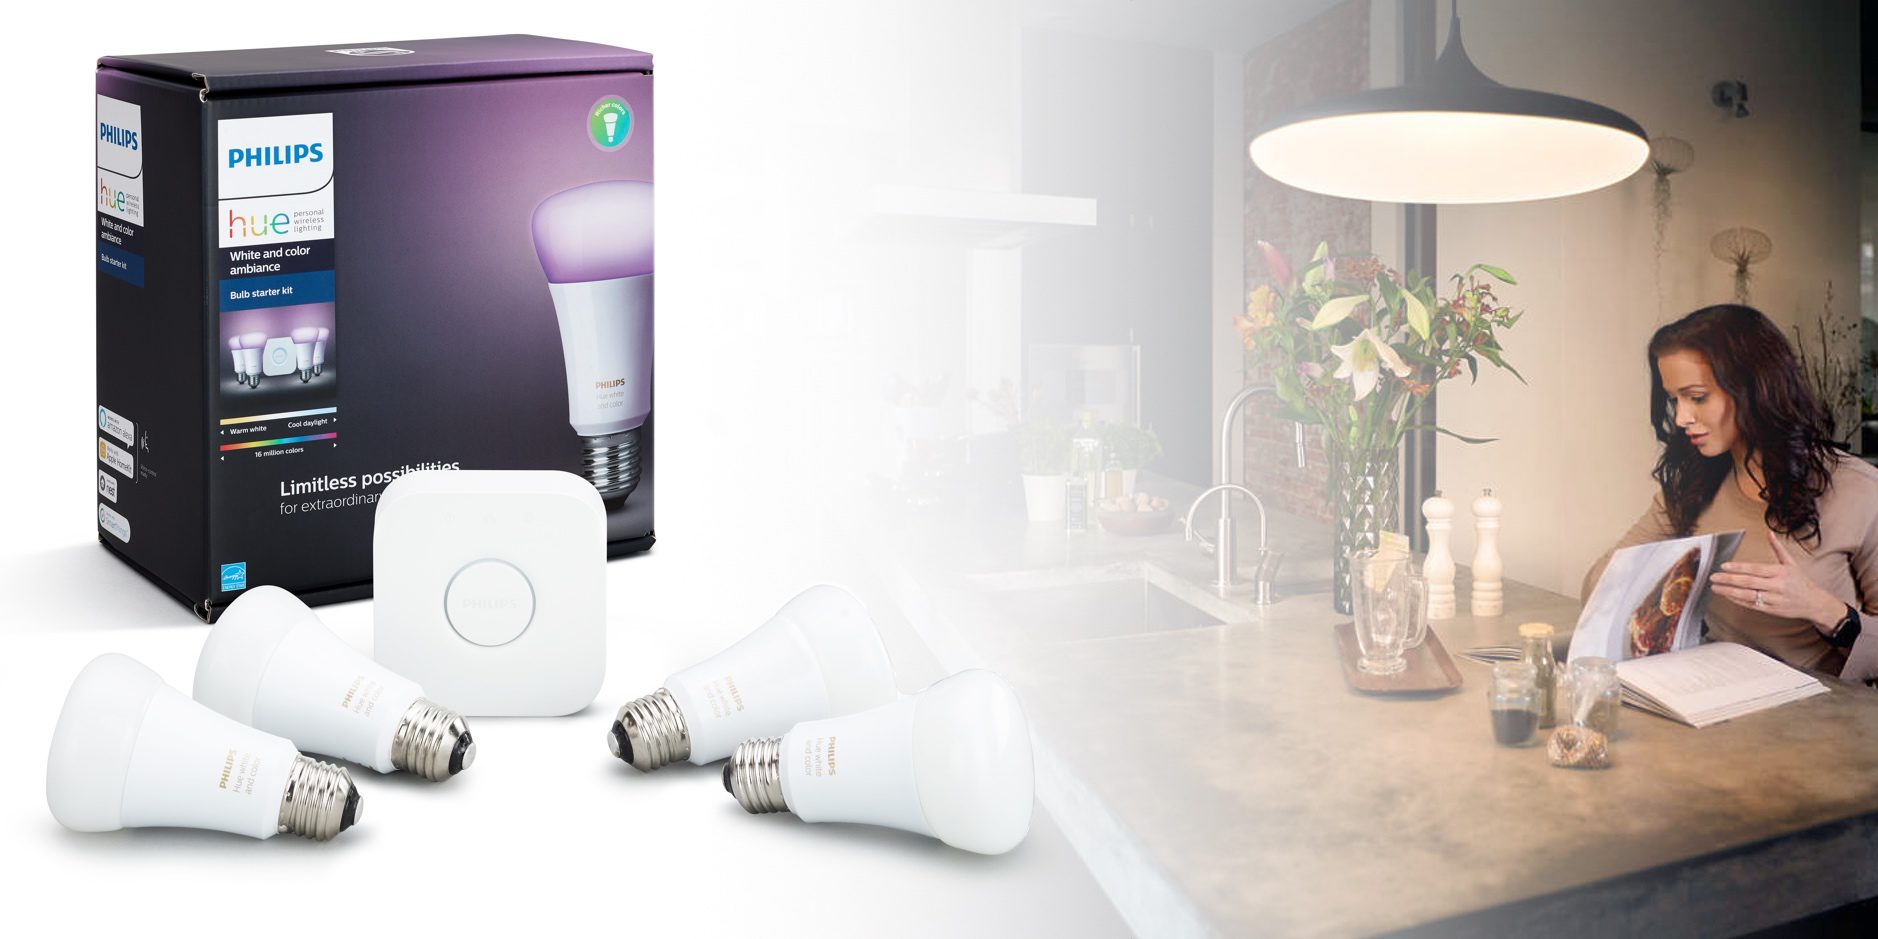 Philips Hue Starter Kits Now Better Value With 4 Bulbs Per